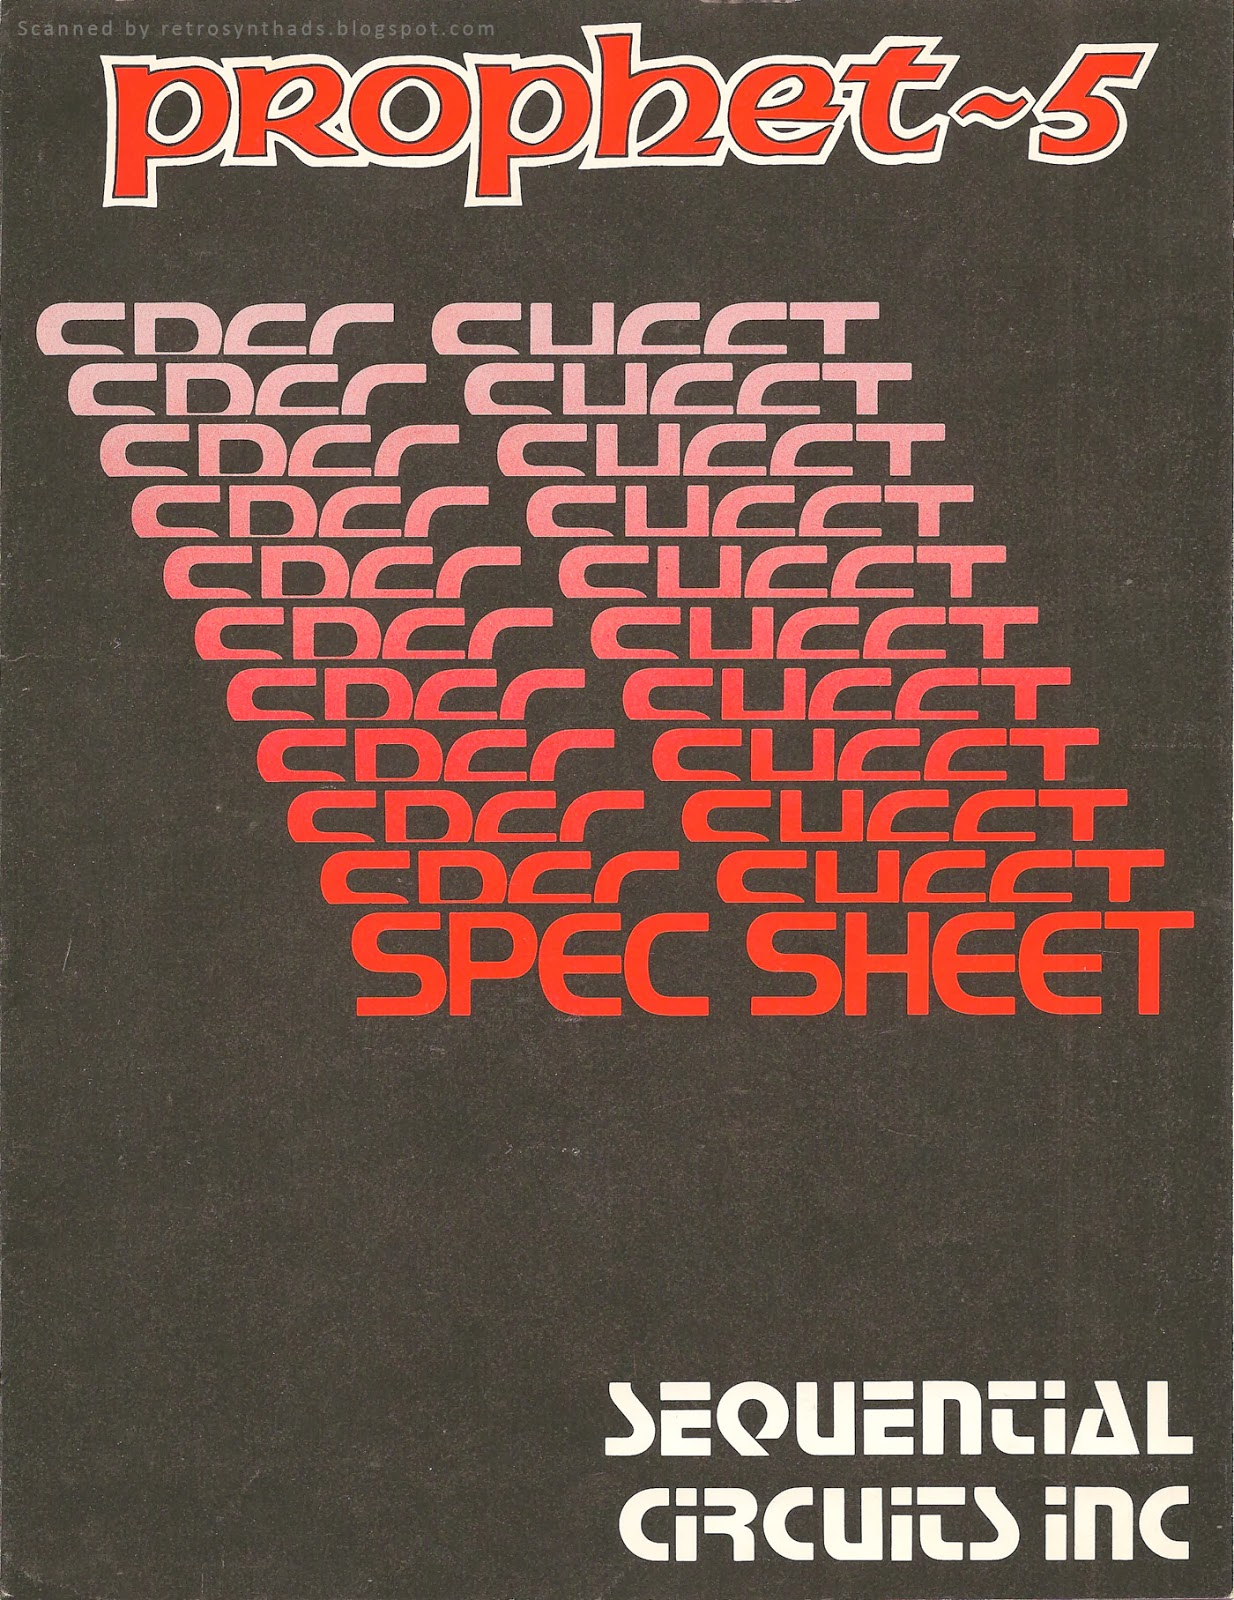 http://retrosynthads.blogspot.ca/2014/02/sequential-circuits-inc-prophet-5.html